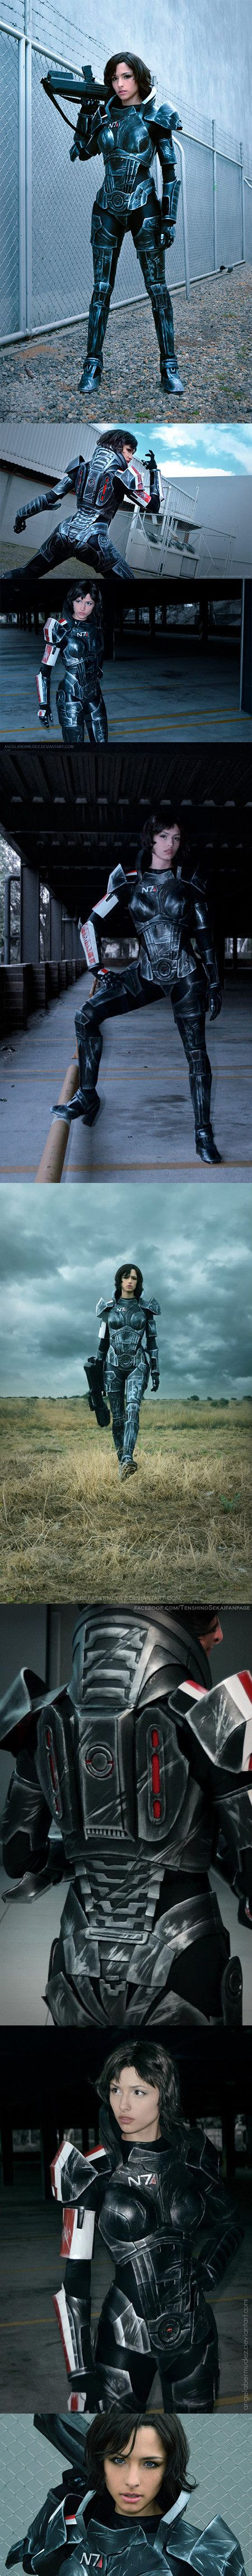 Angela Bermudez and one of her most recent creations is this amazing Mass Effect female shepard costume